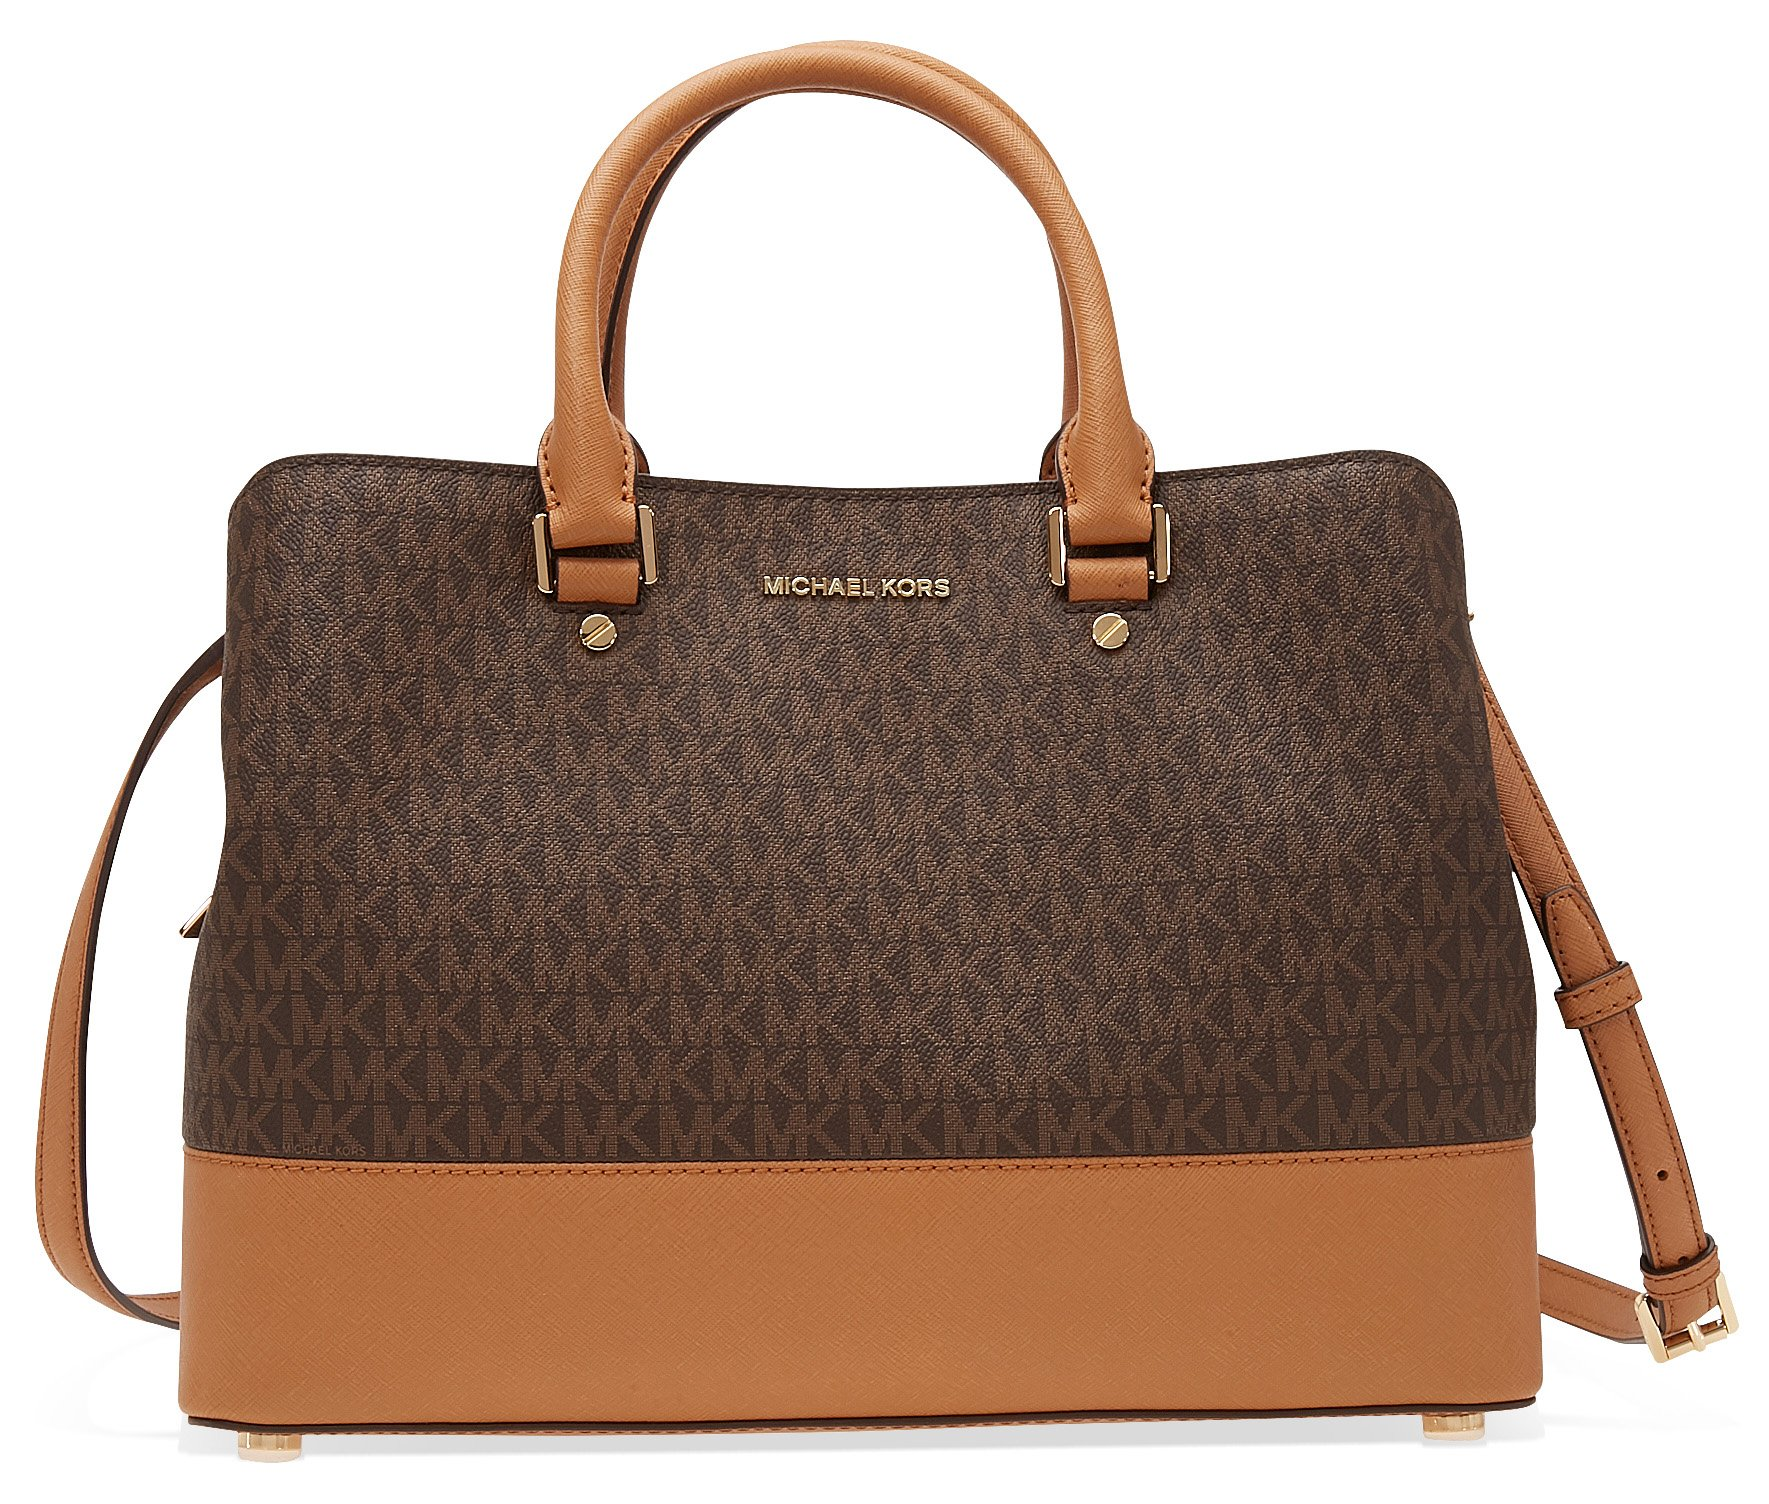 Michael Kors Savannah Large Satchel (Brown) by Michael Kors